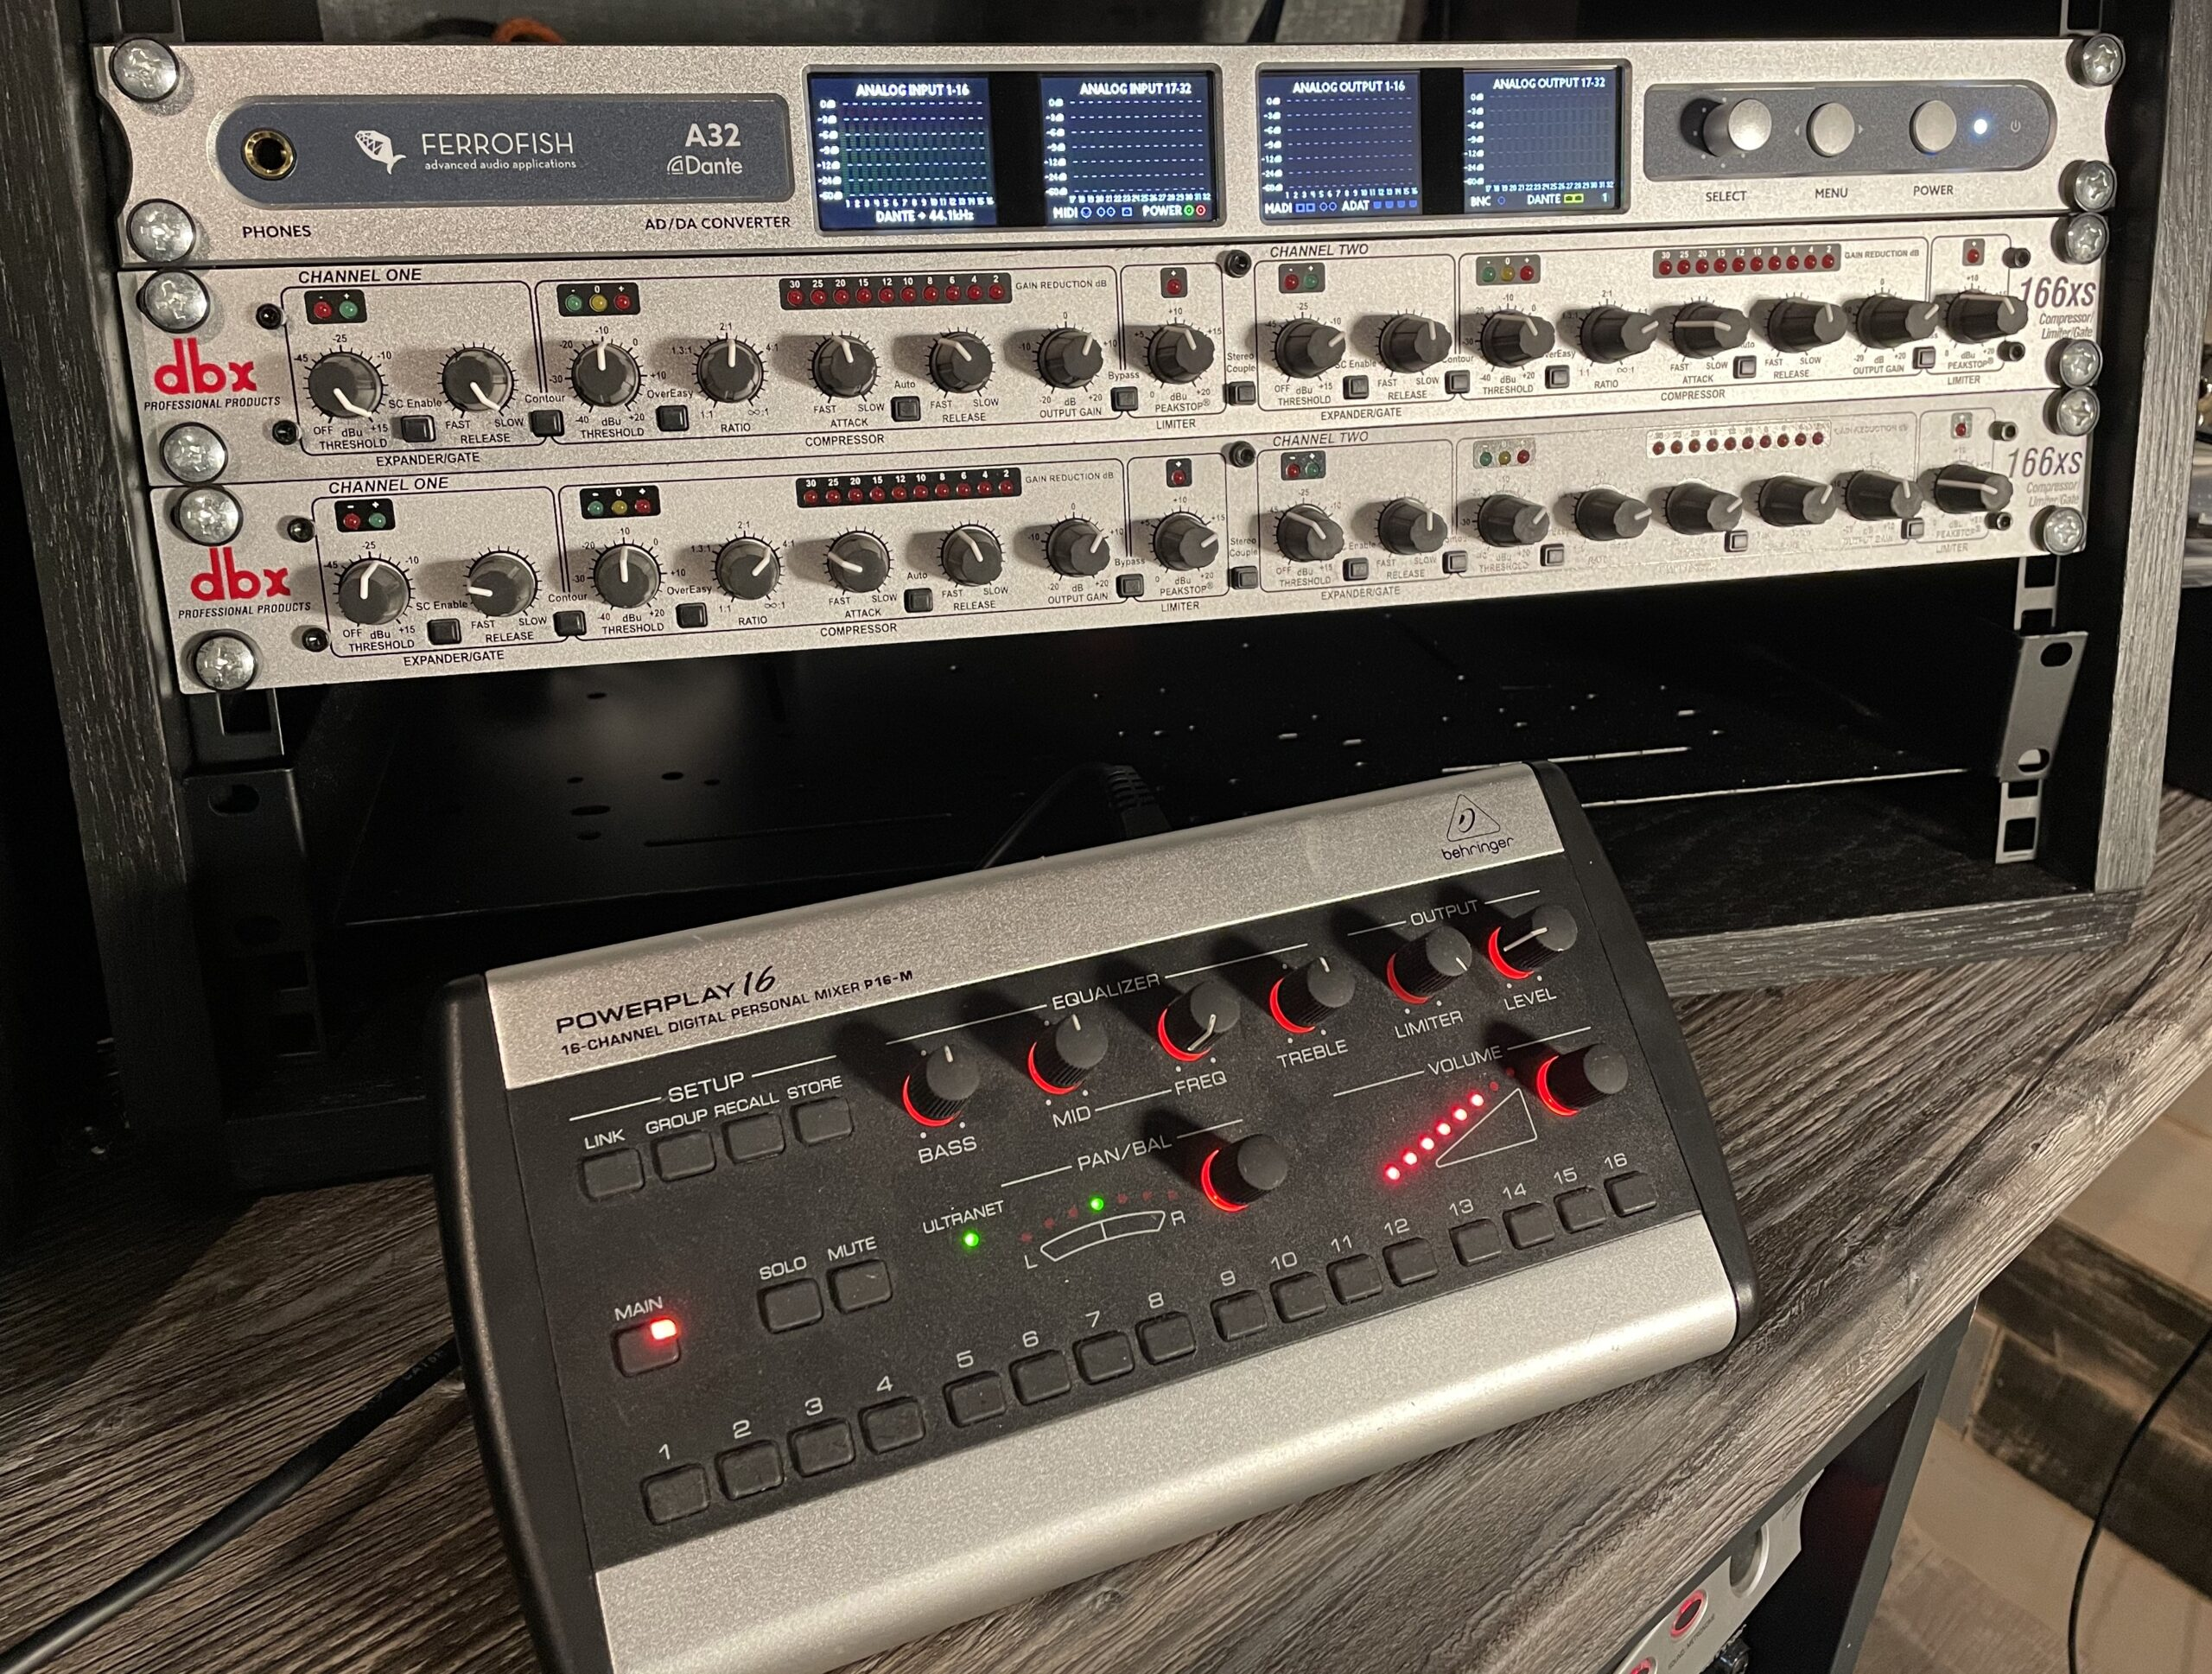 Ferrofish A32 DANTE Converter with Behringer P16 Digital Monitoring System